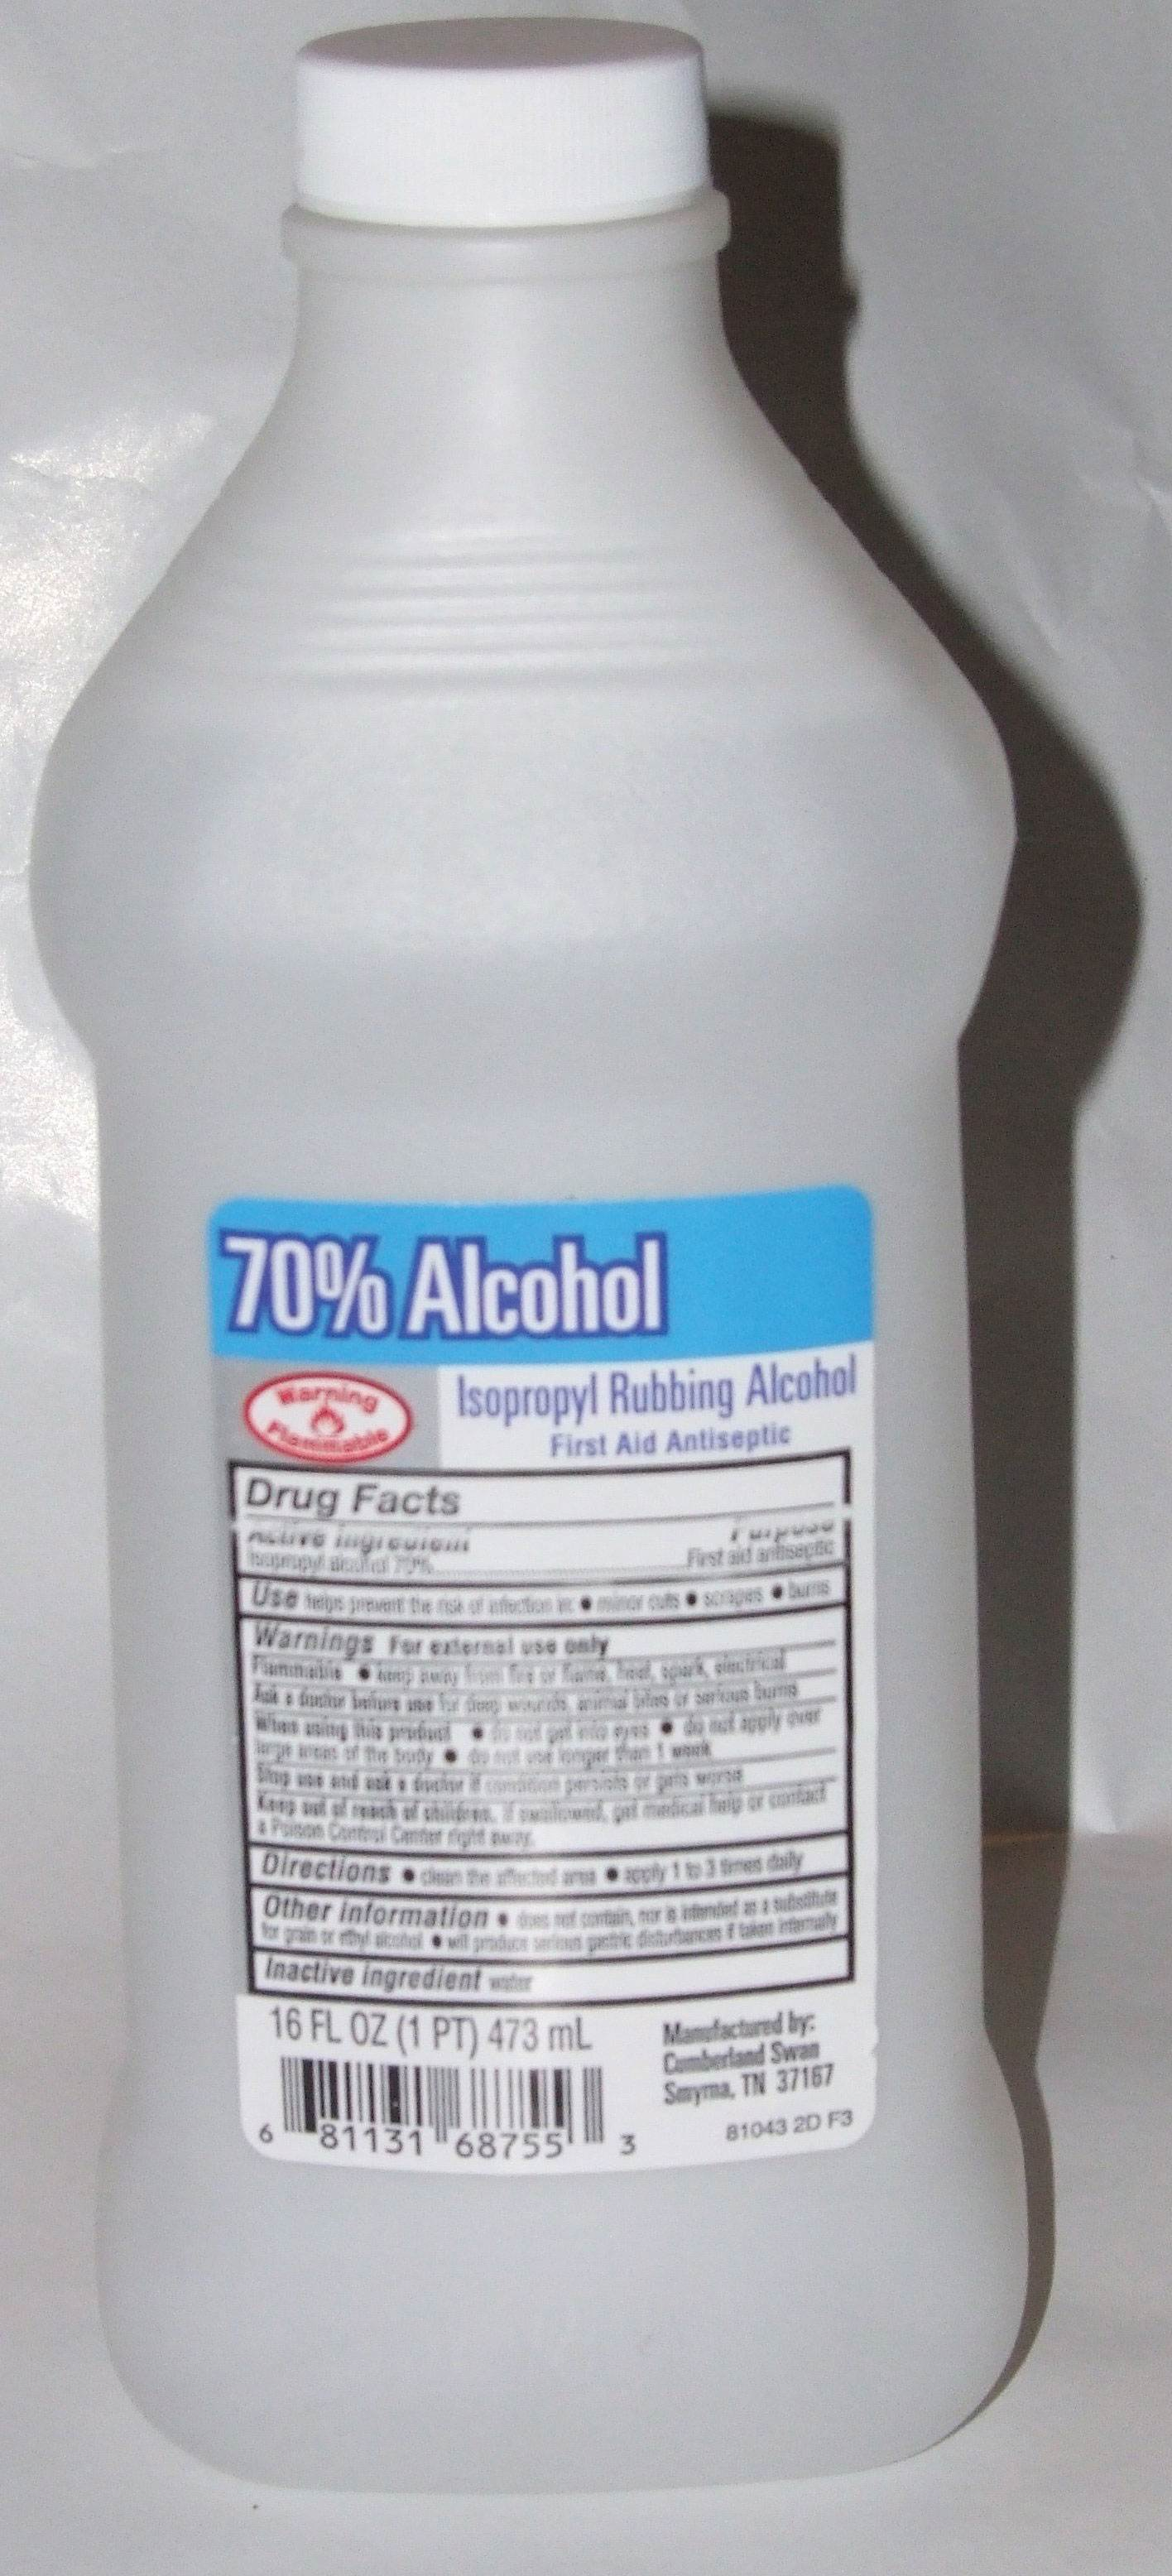 Photo of bottle of isopropyl alcohol